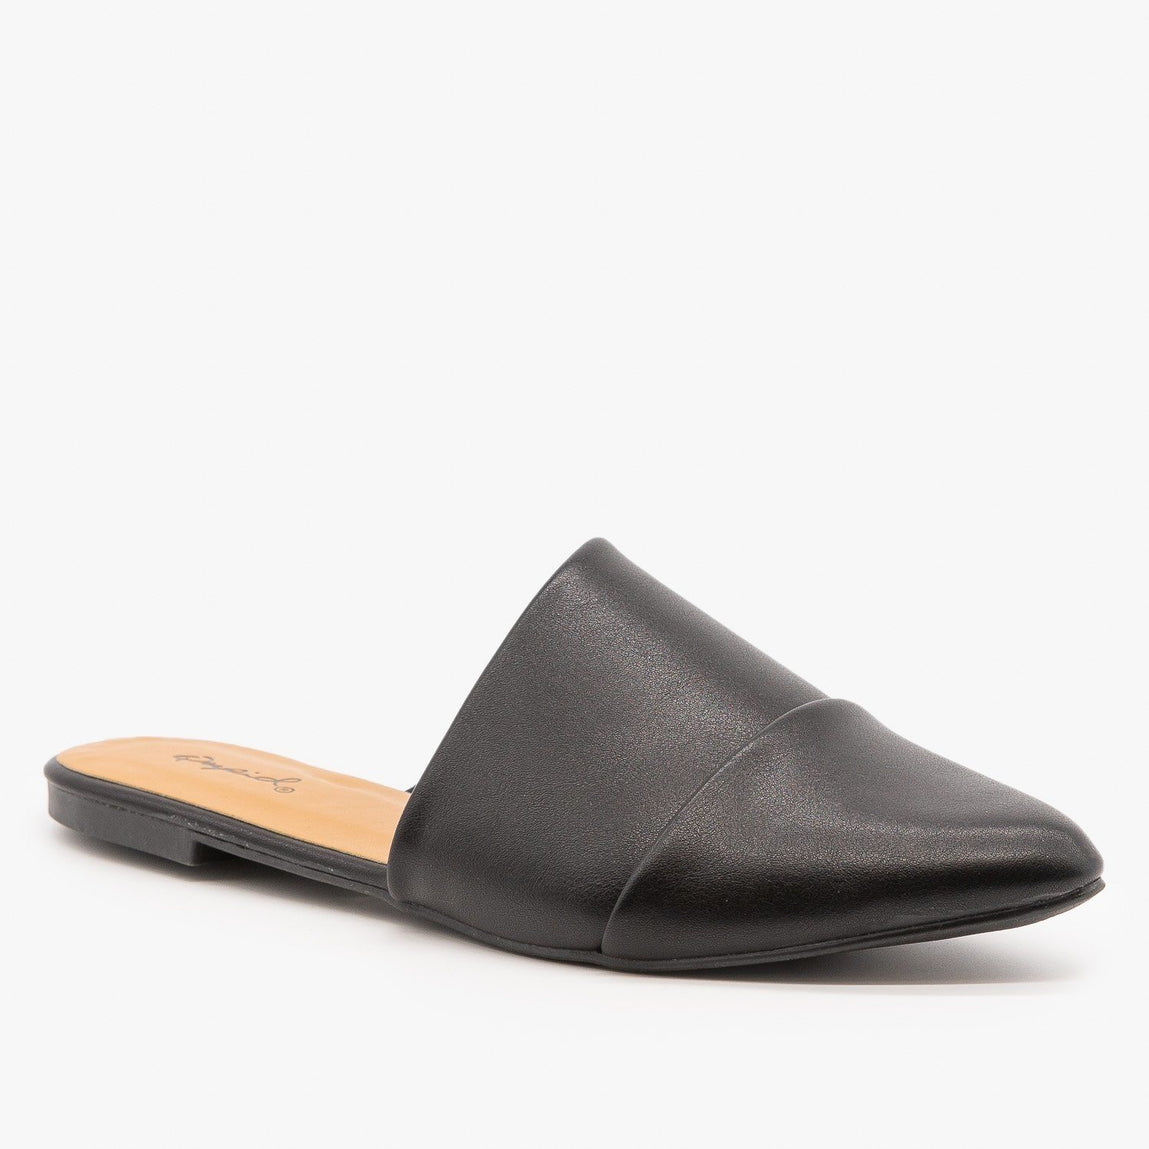 Womens Chic Wrapped Mules - Qupid Shoes